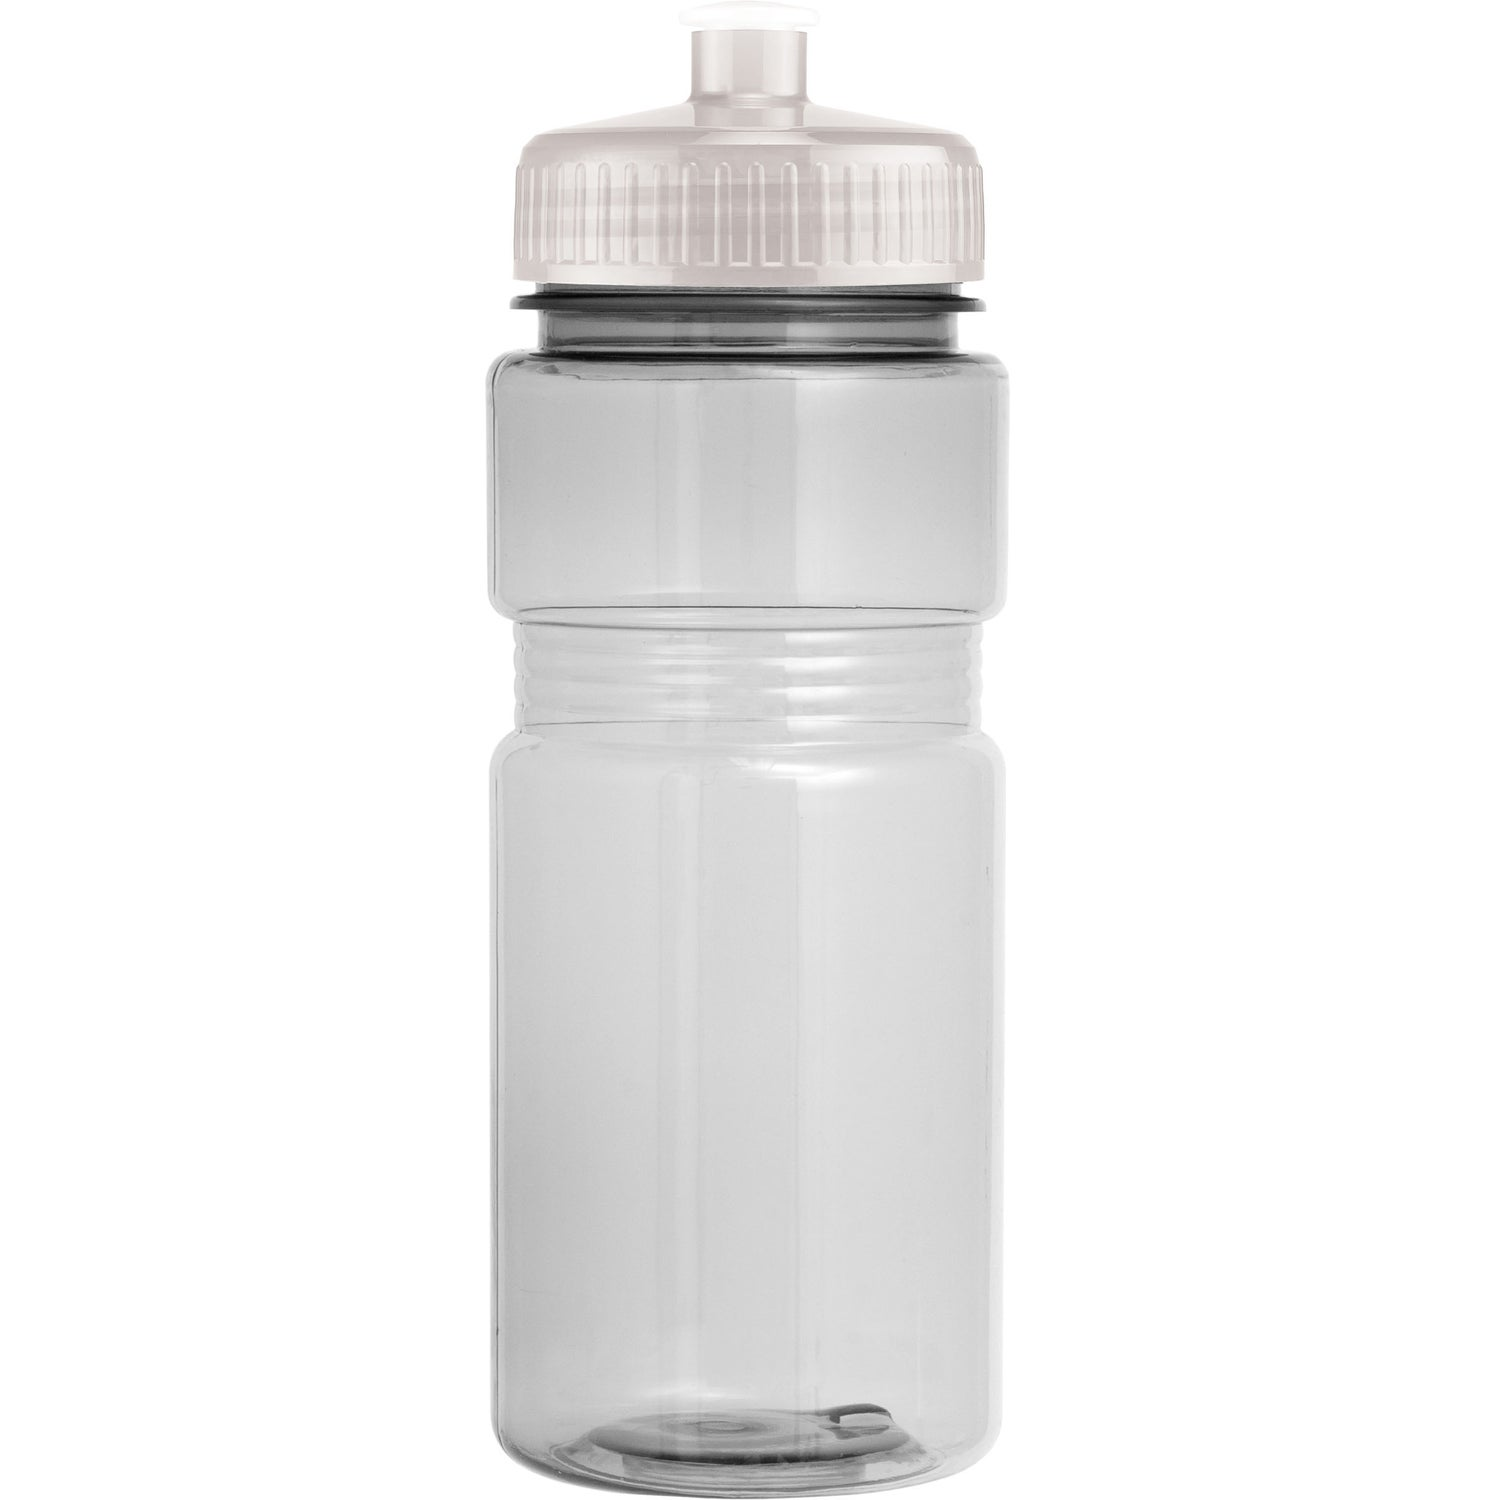 Translucent Recreation Bottle with Push Pull Lid (20 Oz.)